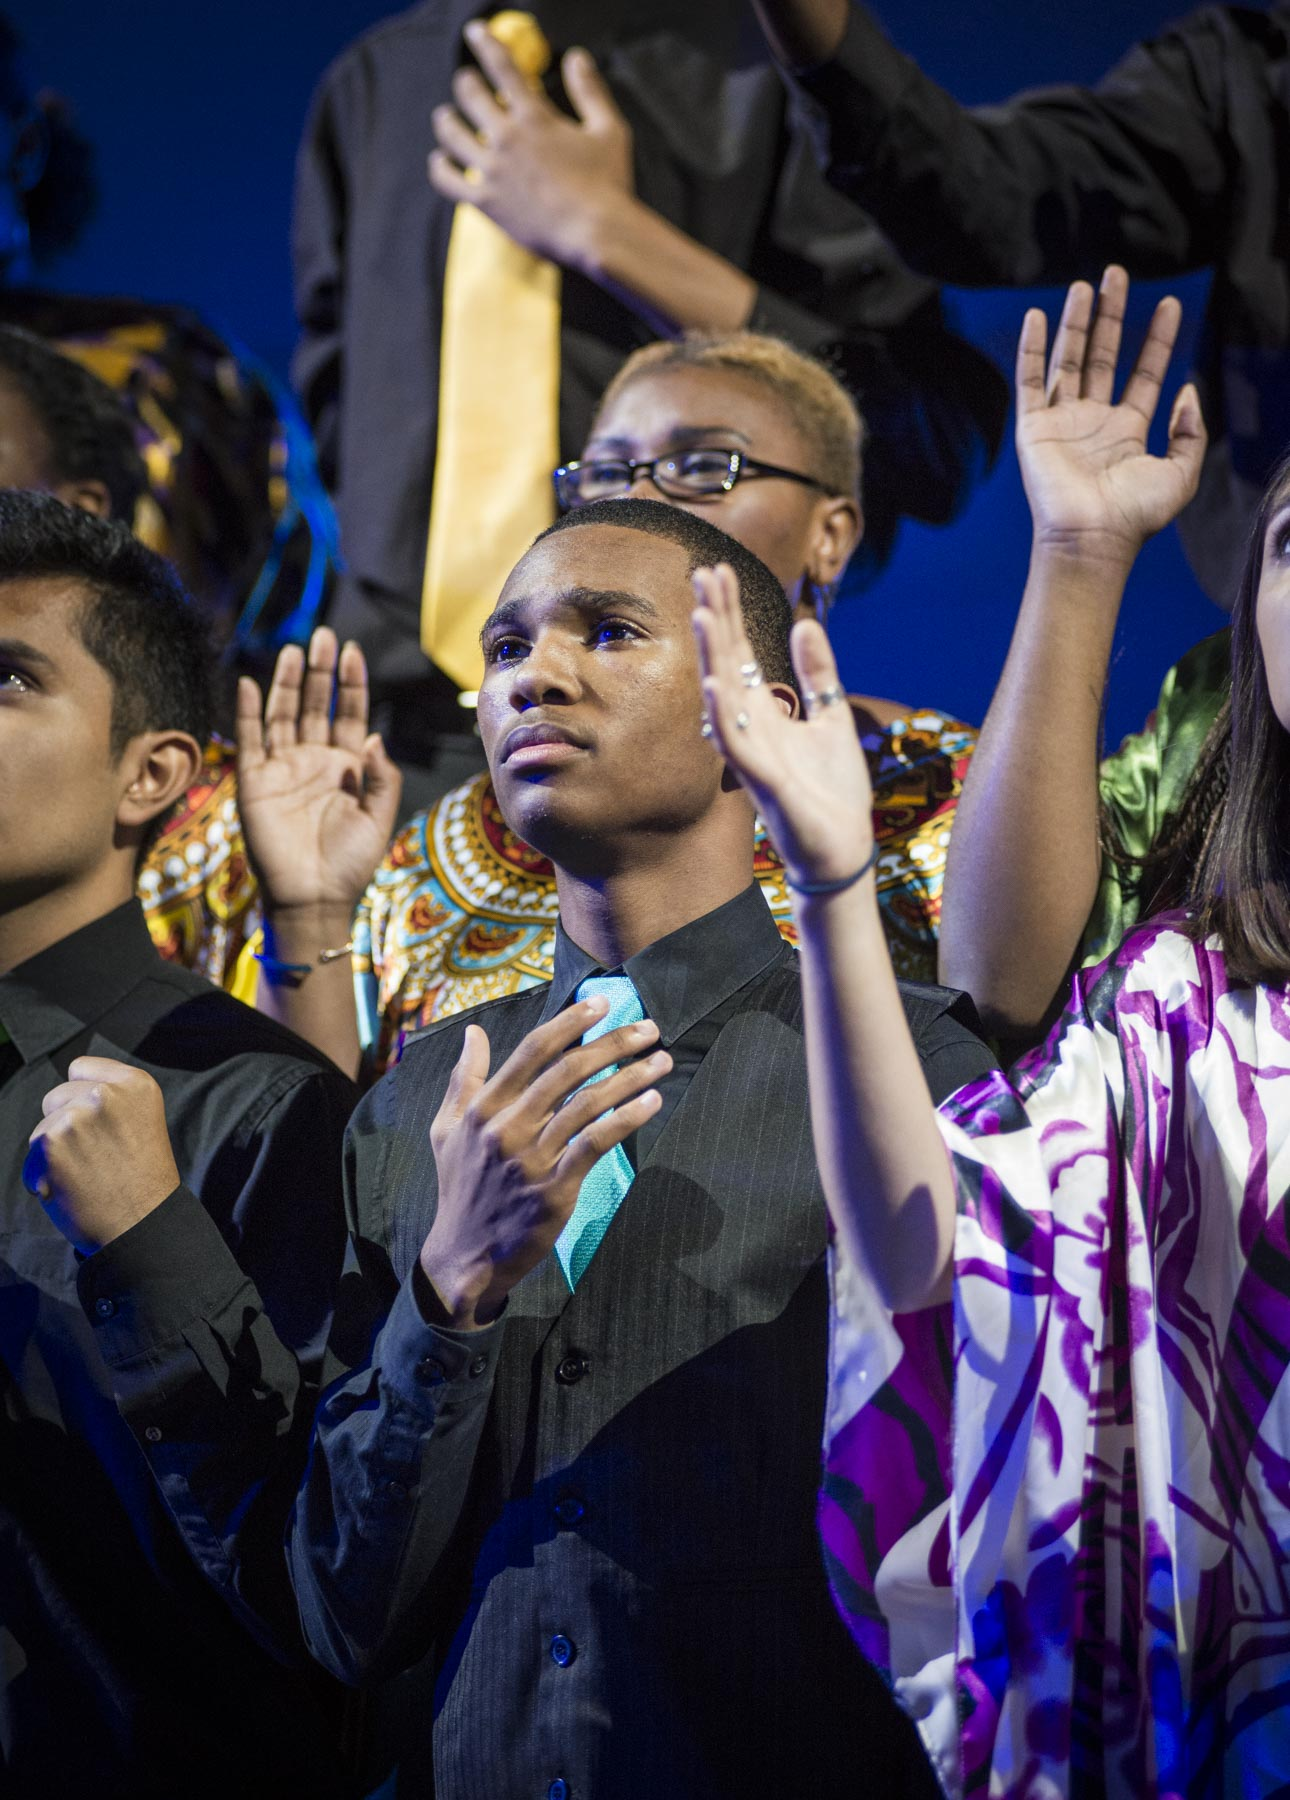 "<p>After School Matters teens perform a moving collaborative piece to the song ""Glory"" from the movie Selma at the After School Matters Annual Gala on September 21, 2015 at Navy Pier. Photo credit: John Martin-Eatinger</p>"